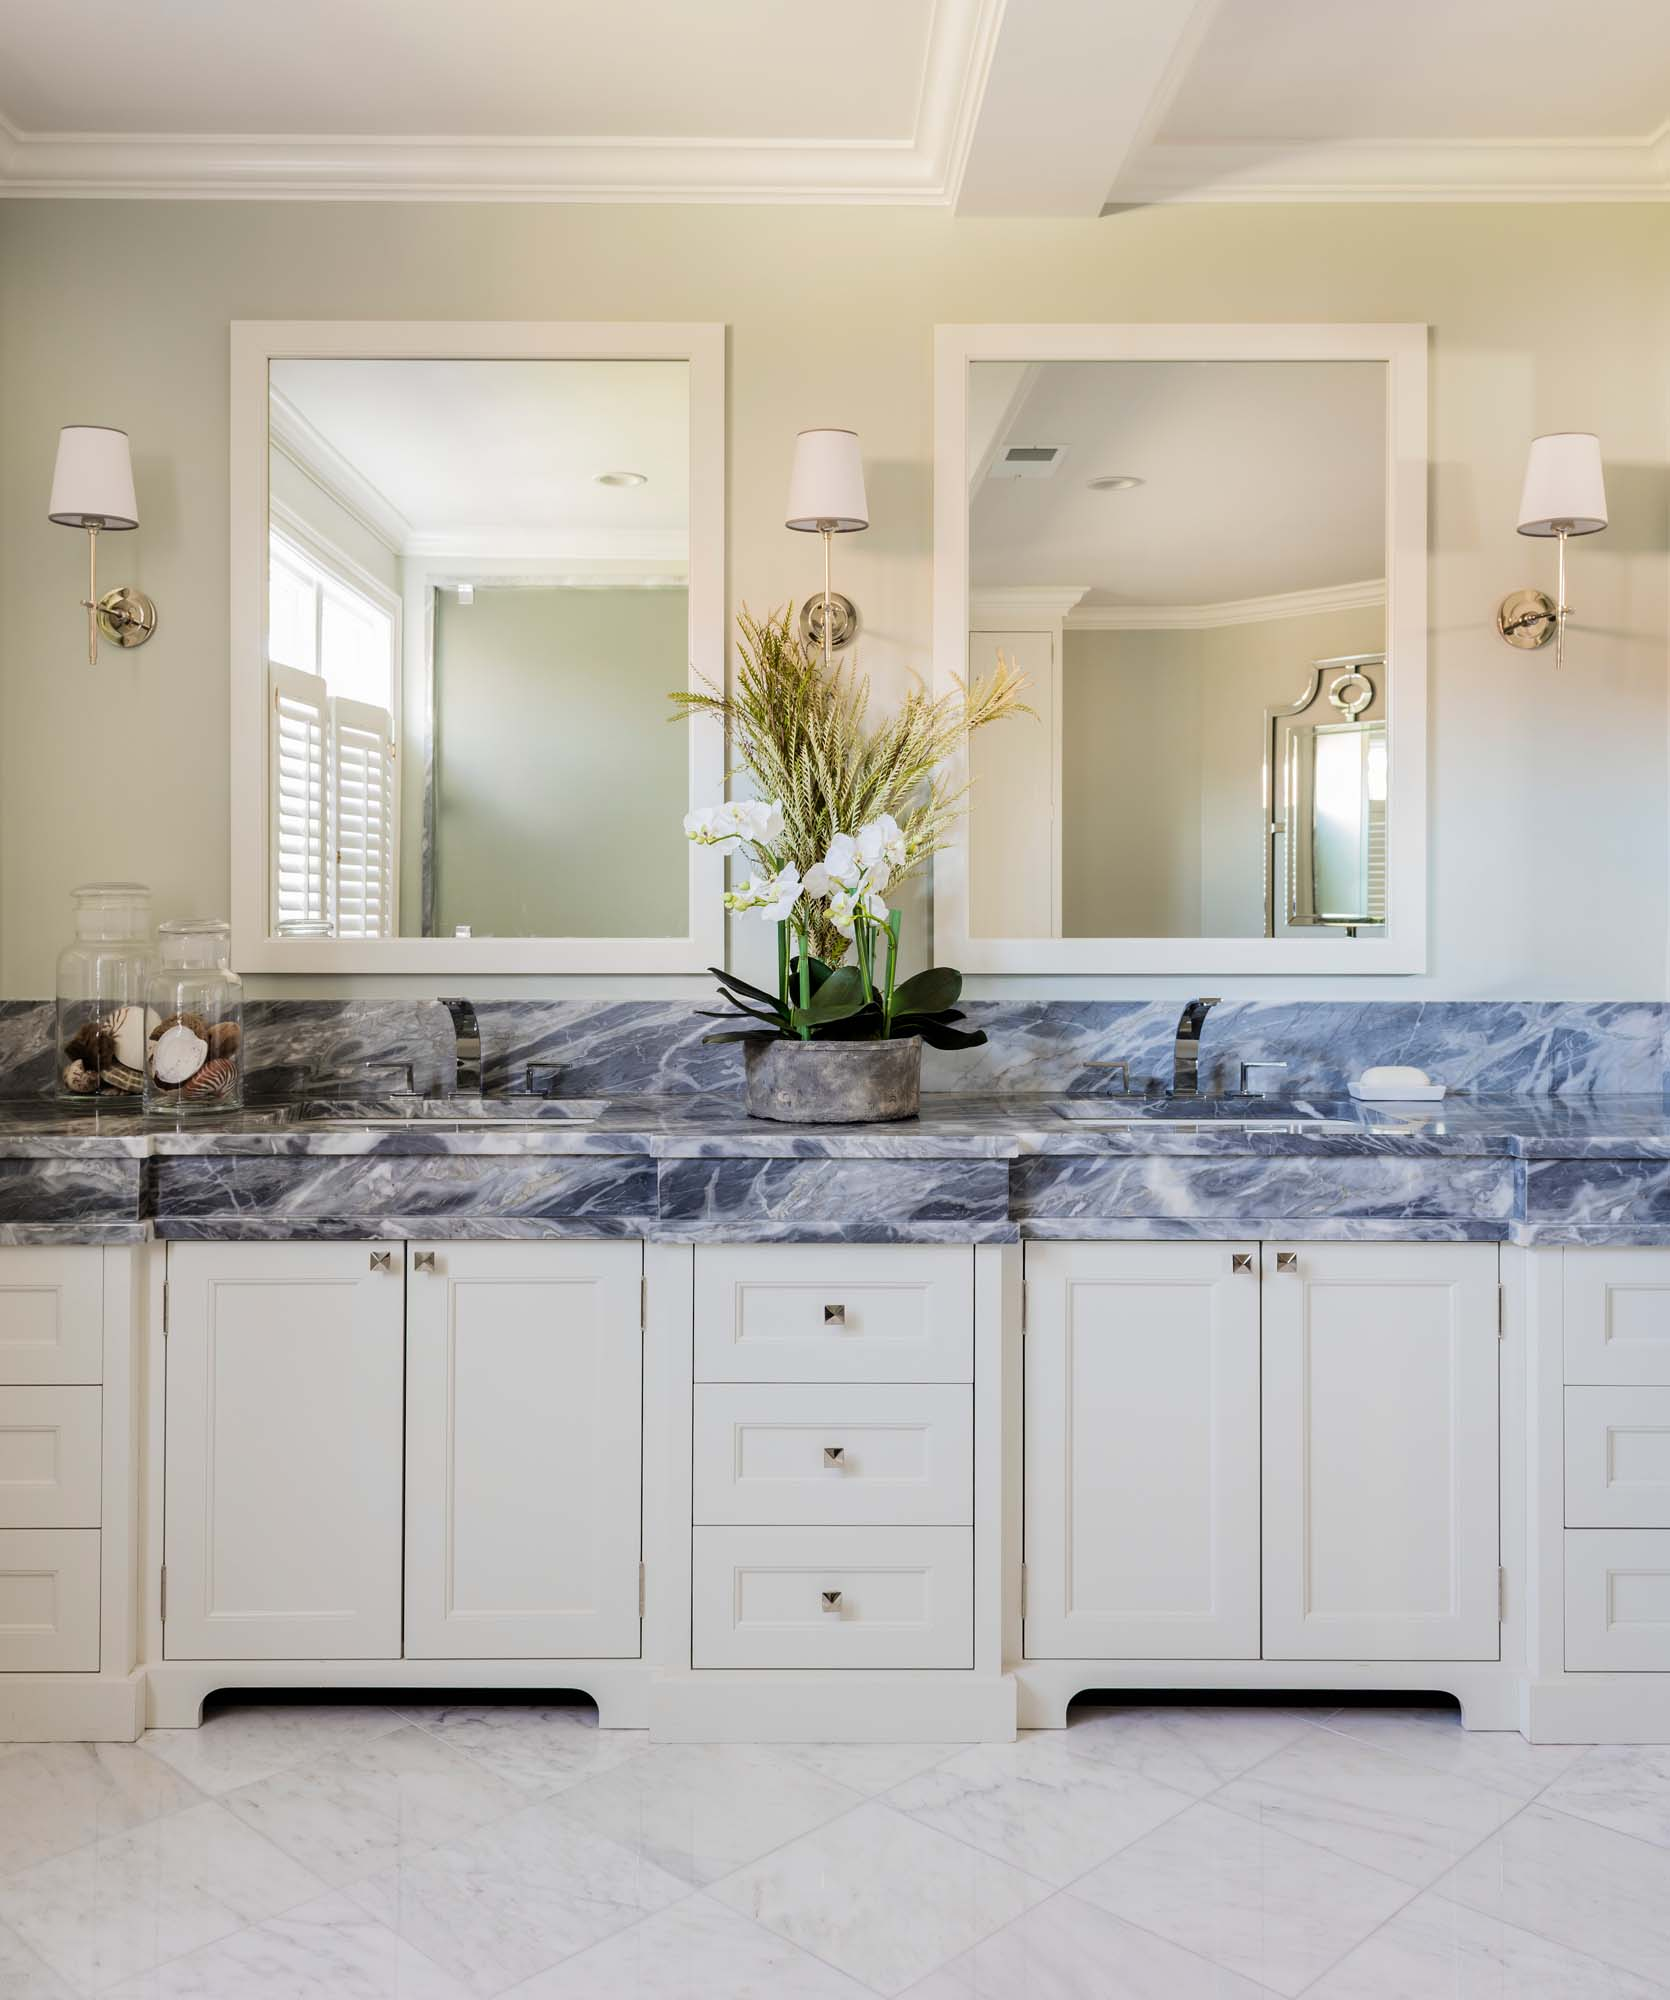 Bathroom with ceramic countertops, white wooden cabinets, and mirrors on the wall, not ceramic countertop, calcutta gray marble, gray marble, calcutta, custom countertop, custom cabinet, white dove, benjamin moore, visual comfort, bryant sconce, polished nickel, rohl faucet, wave faucet, arebescato, marble, arebescato marble, 12 inch